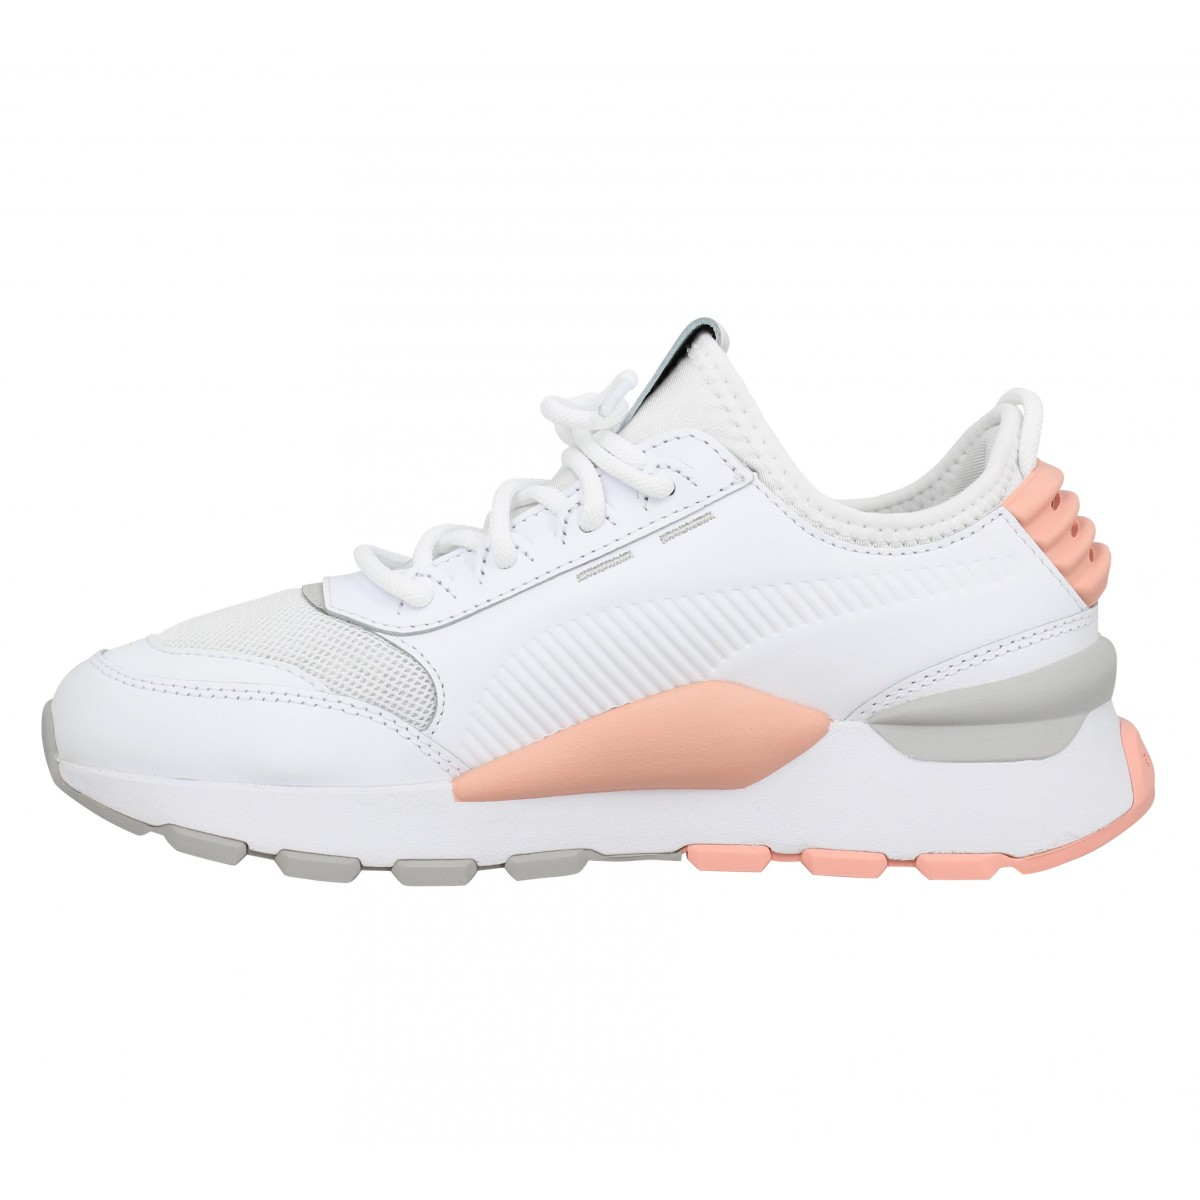 PUMA RS 0 Sound toile Femme Blanc Rose